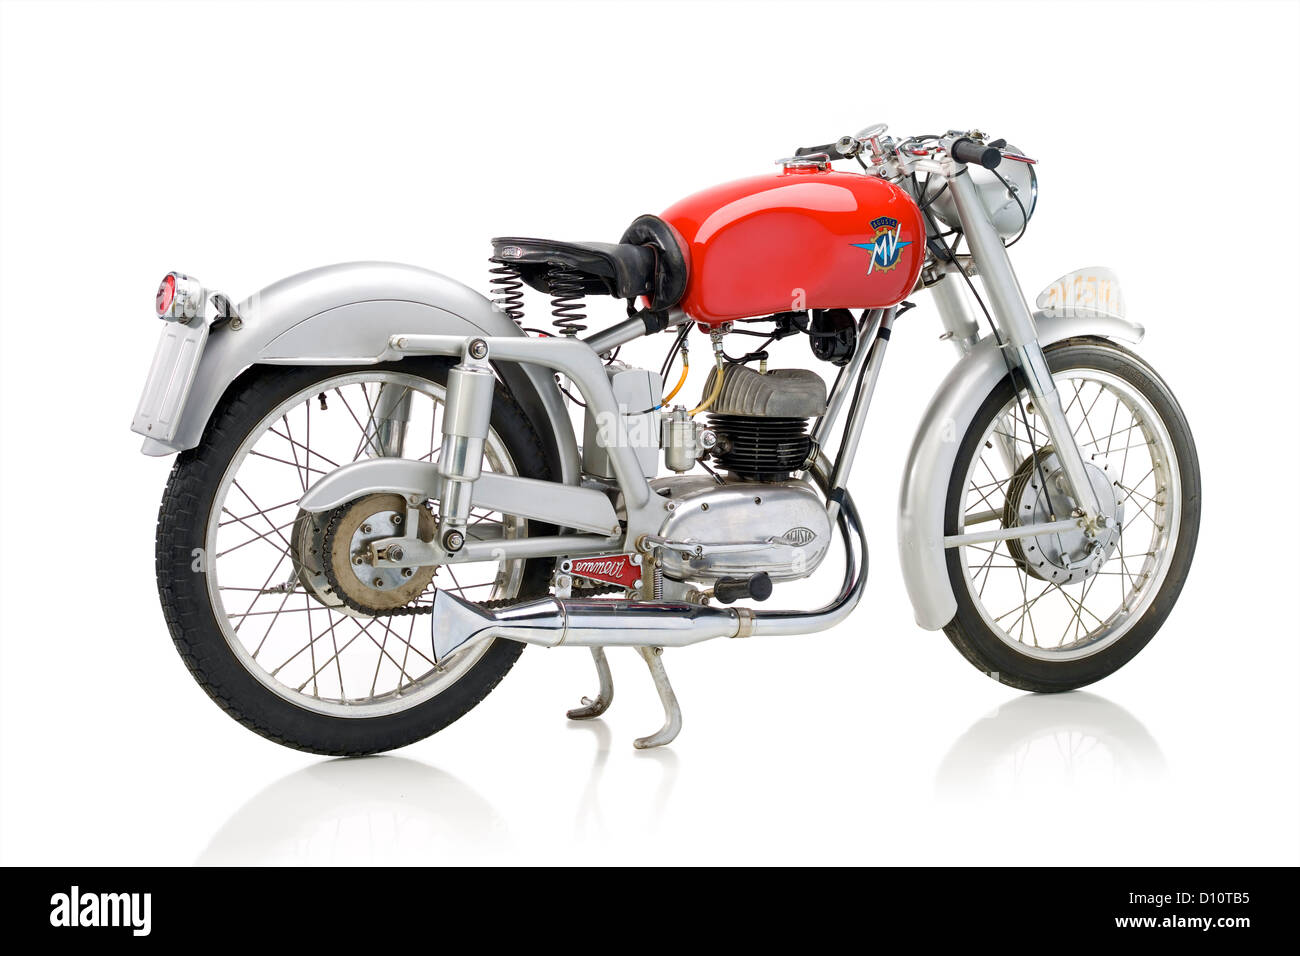 1953 MV Agusta 150 S motorcycle - Stock Image